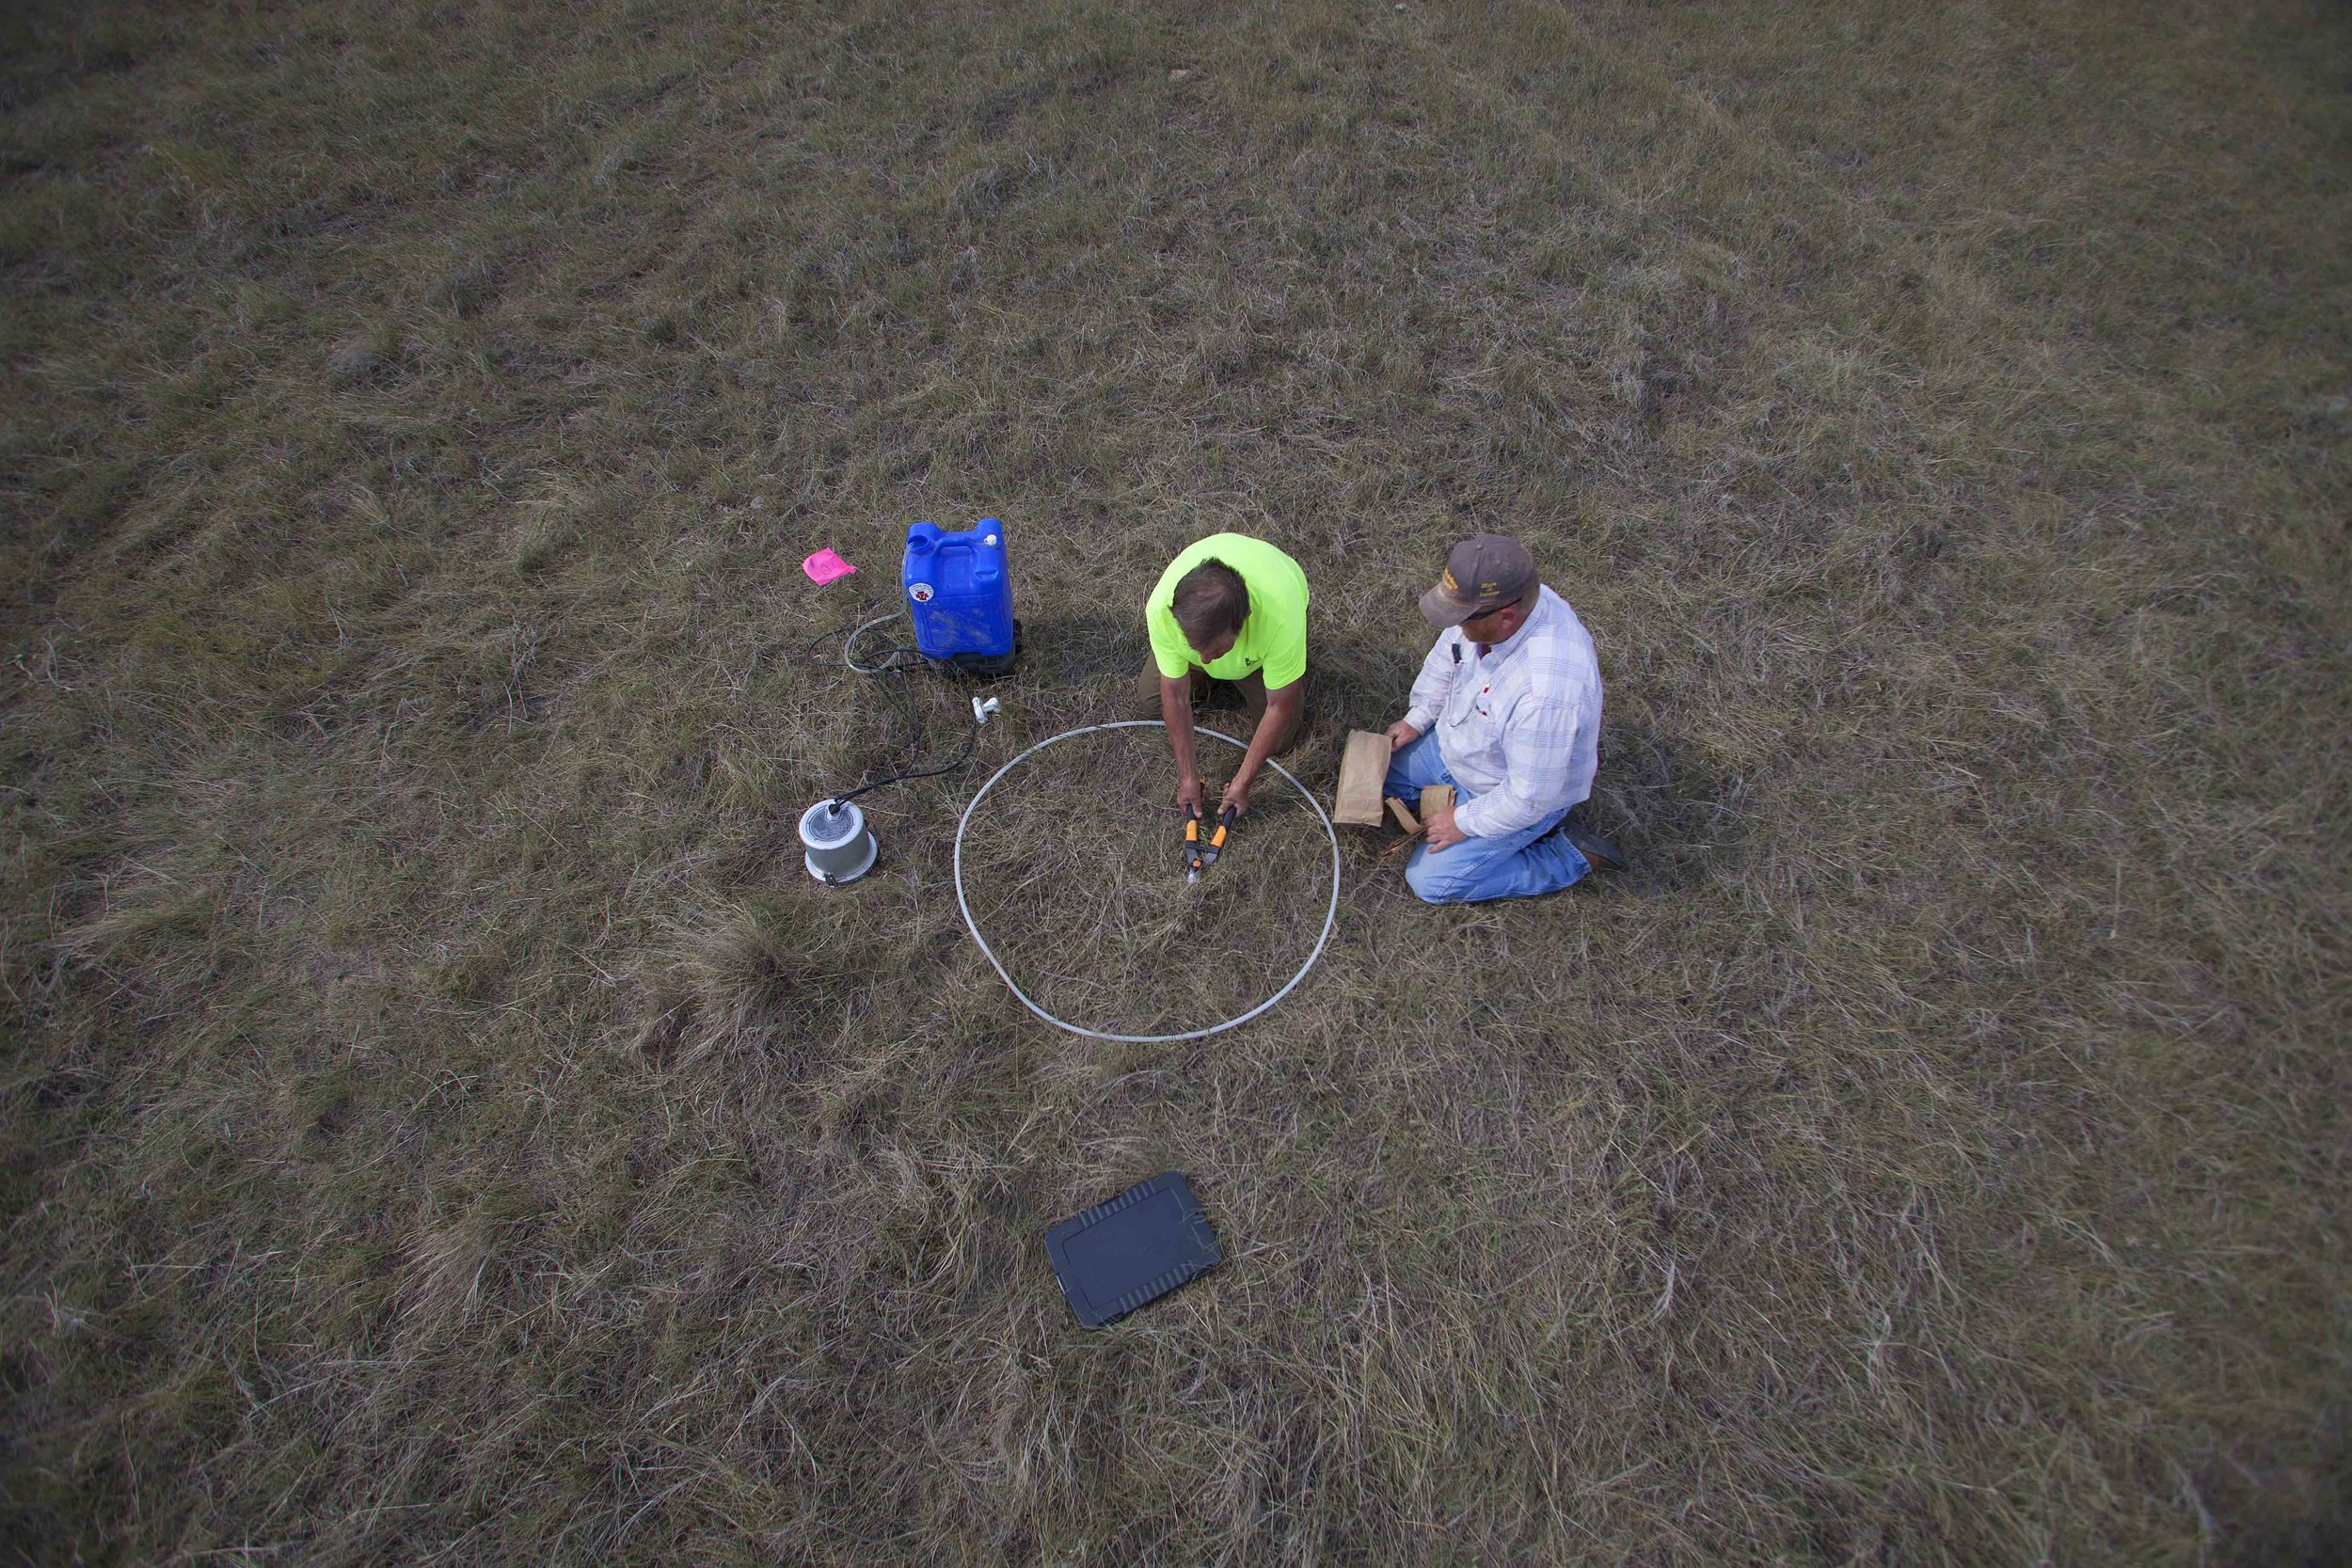 Steven Apfelbaum, left, of Applied Ecological Services, performs a biomass test on a section of pasture, with the help of 777 Bison Ranch Manager Moritz Espy. This test measures plant productivity and the health of the soil.